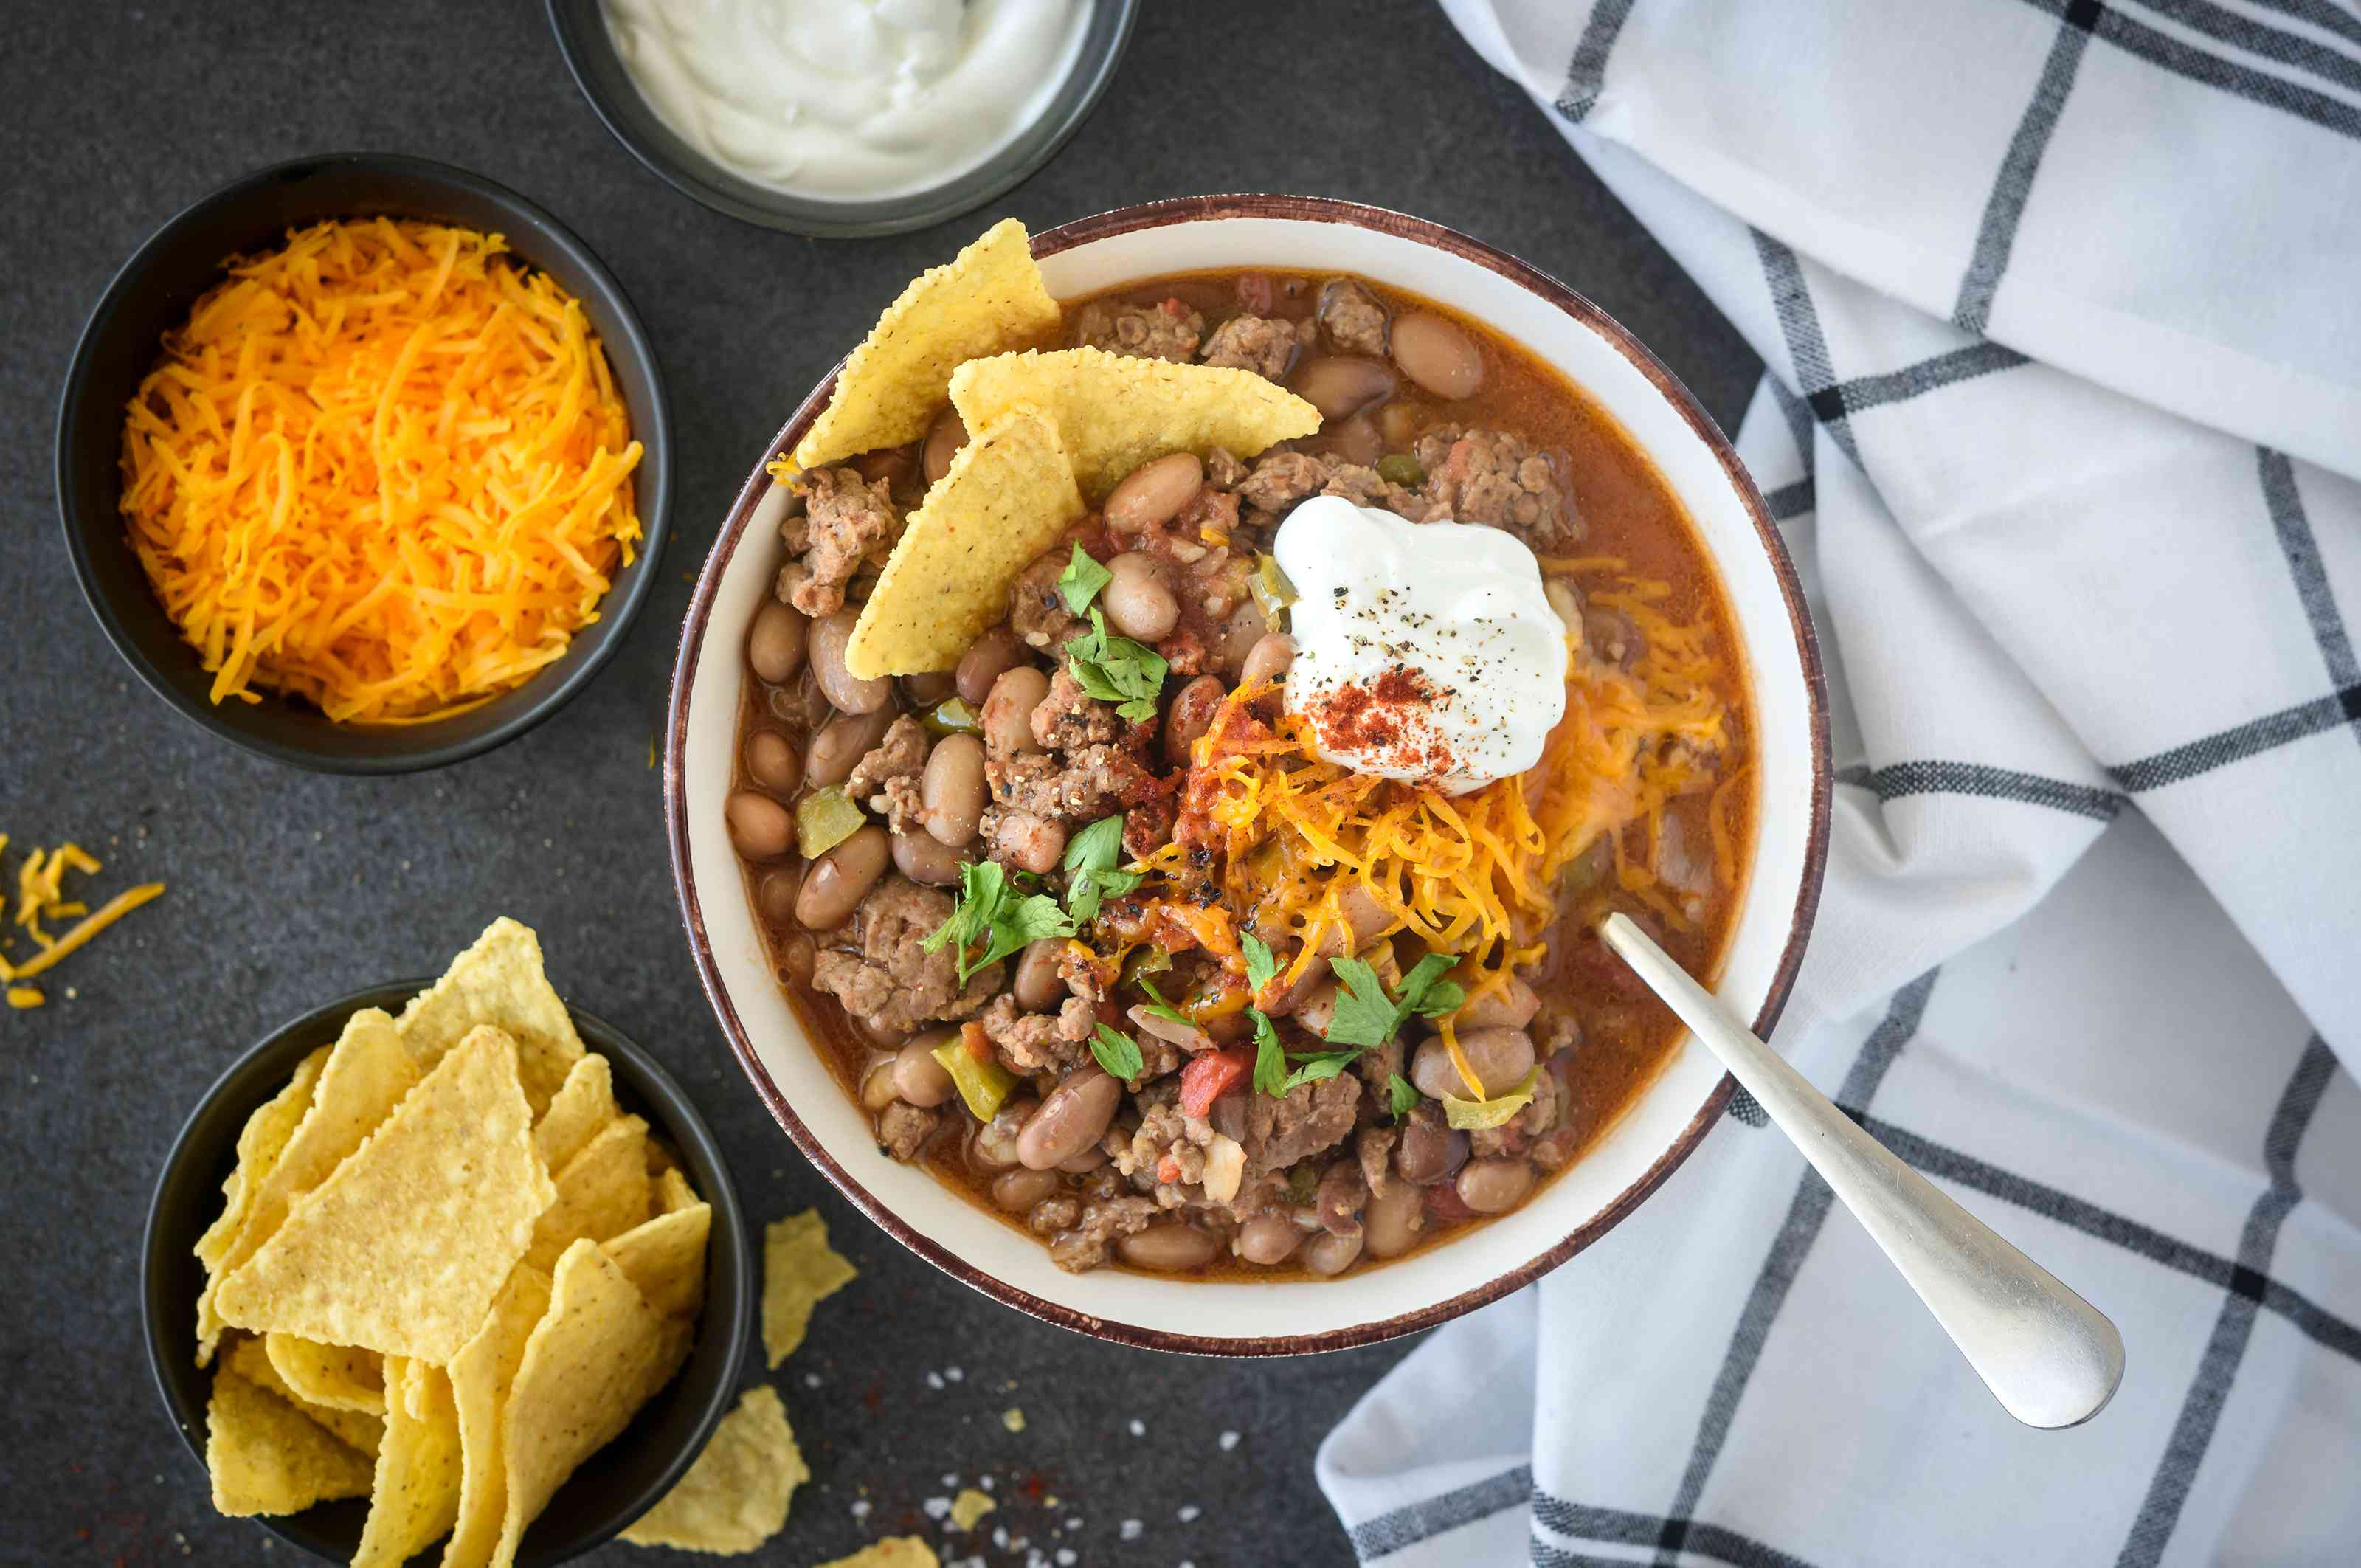 Add toppings to chili